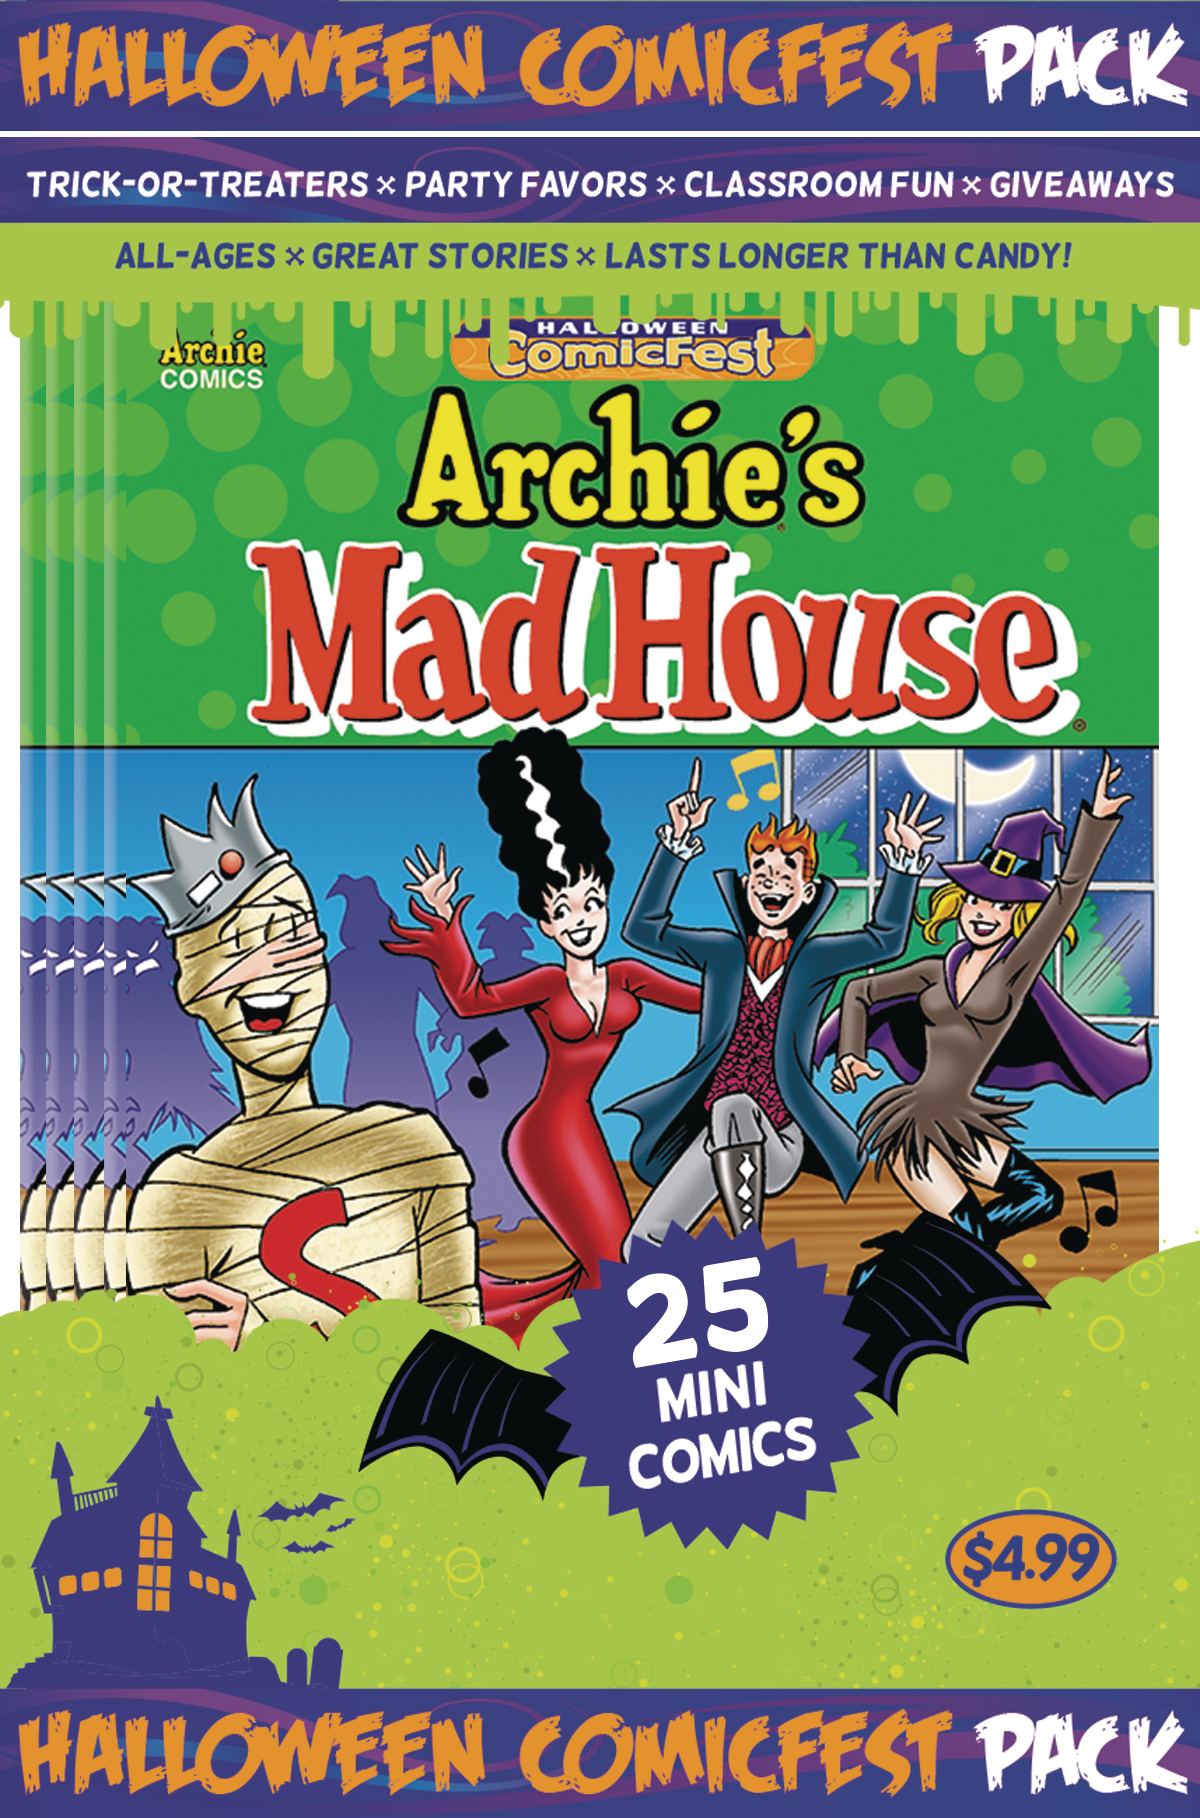 HCF 2016 ARCHIES MADHOUSE MINI COMIC POLYPACK